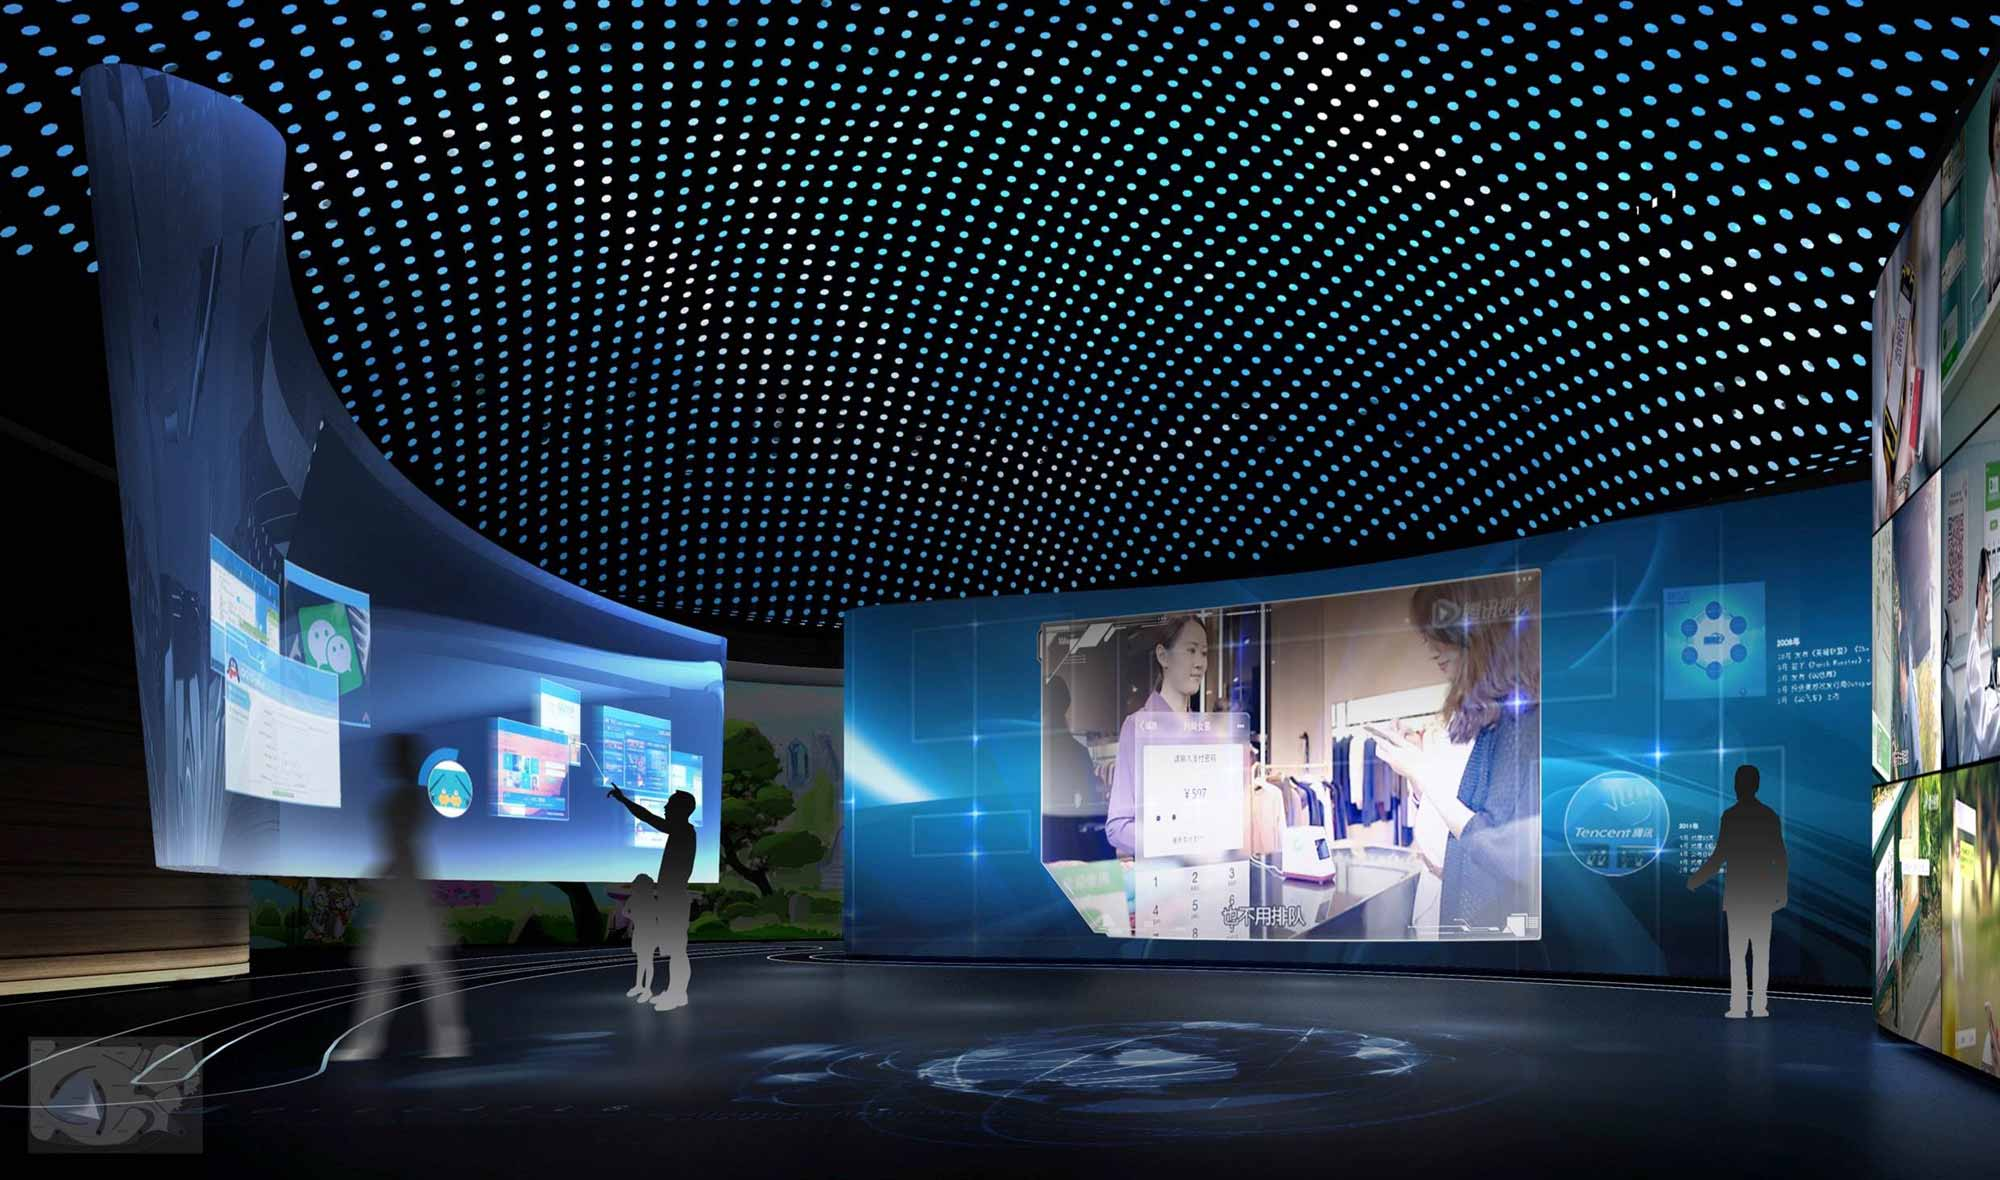 How Is Technology Affecting Interior Design?